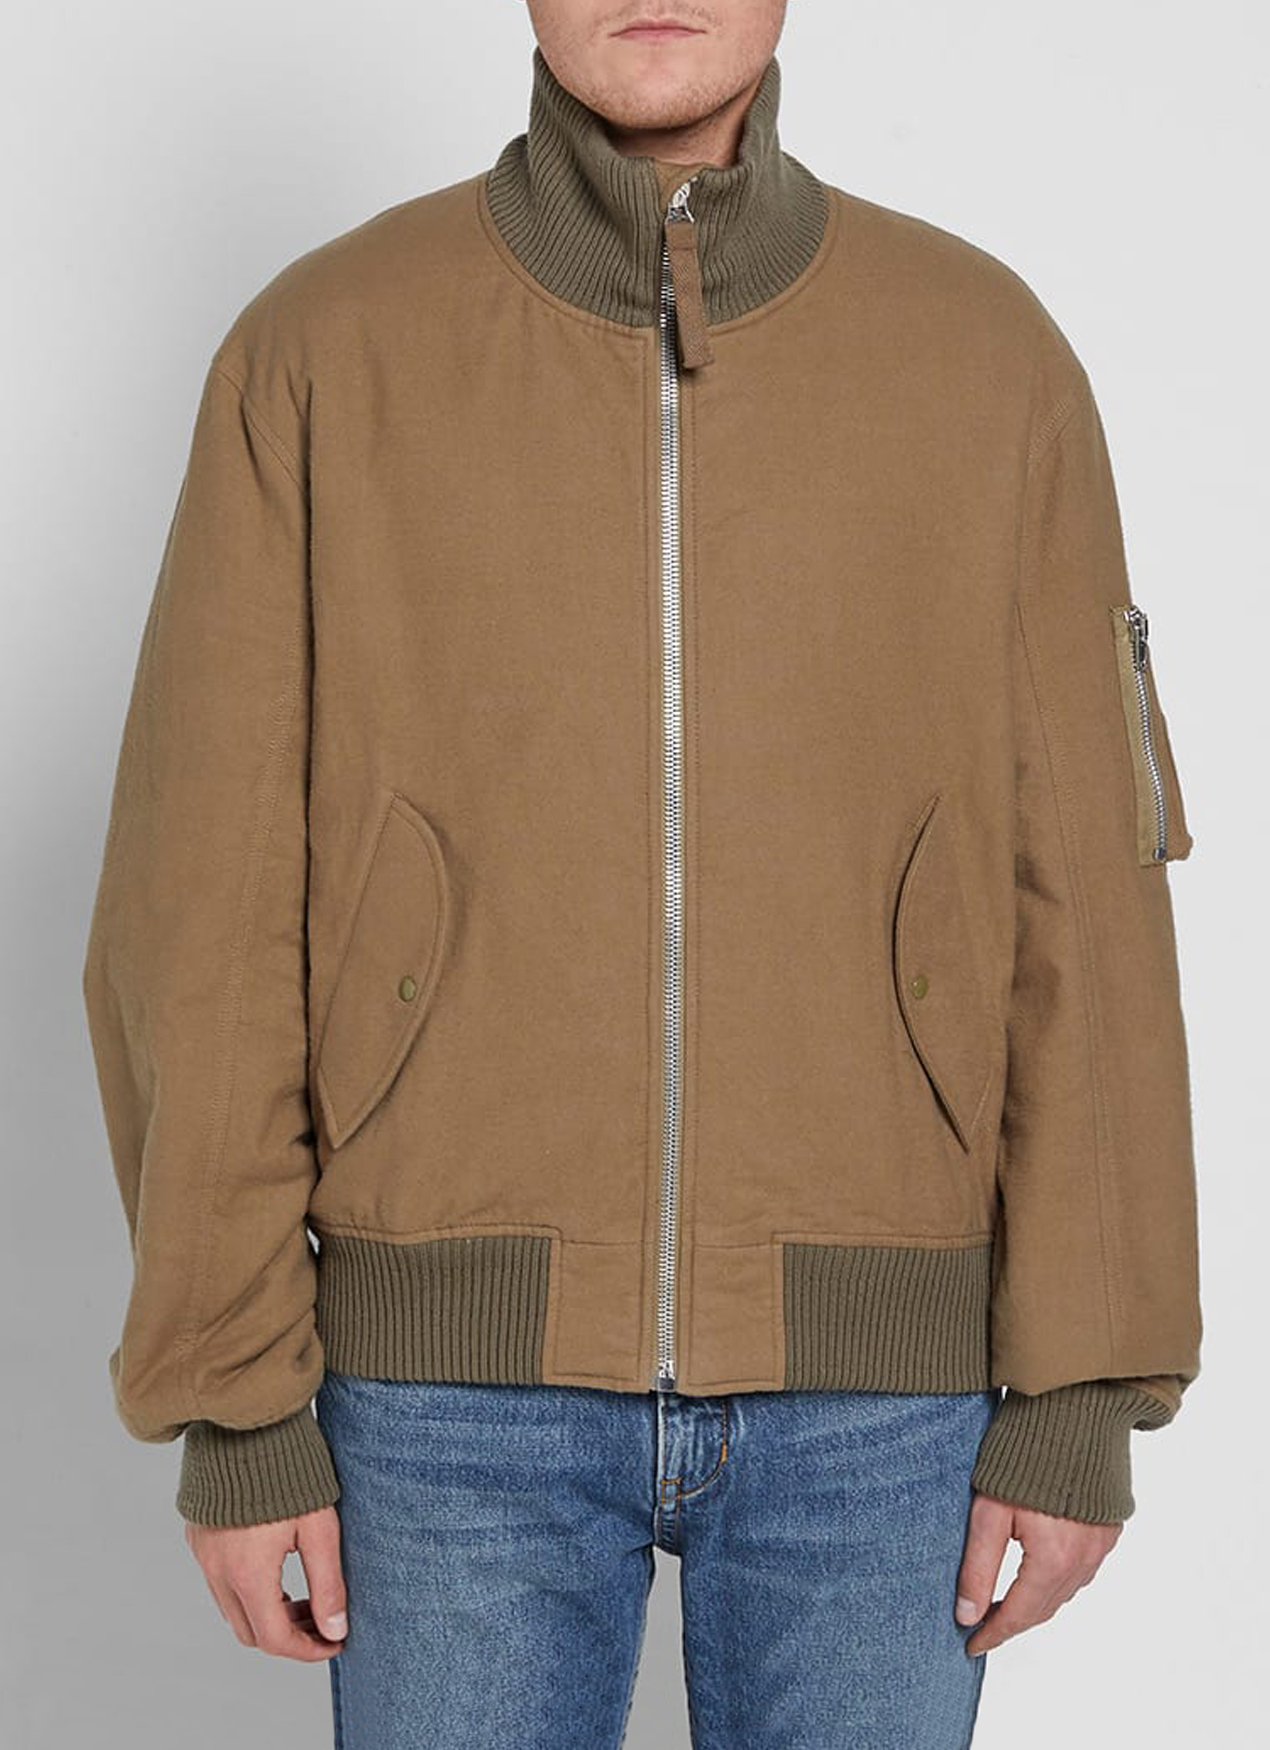 59993a1d0 Brown Re-Edition High Collar Bomber Jacket, Helmut Lang